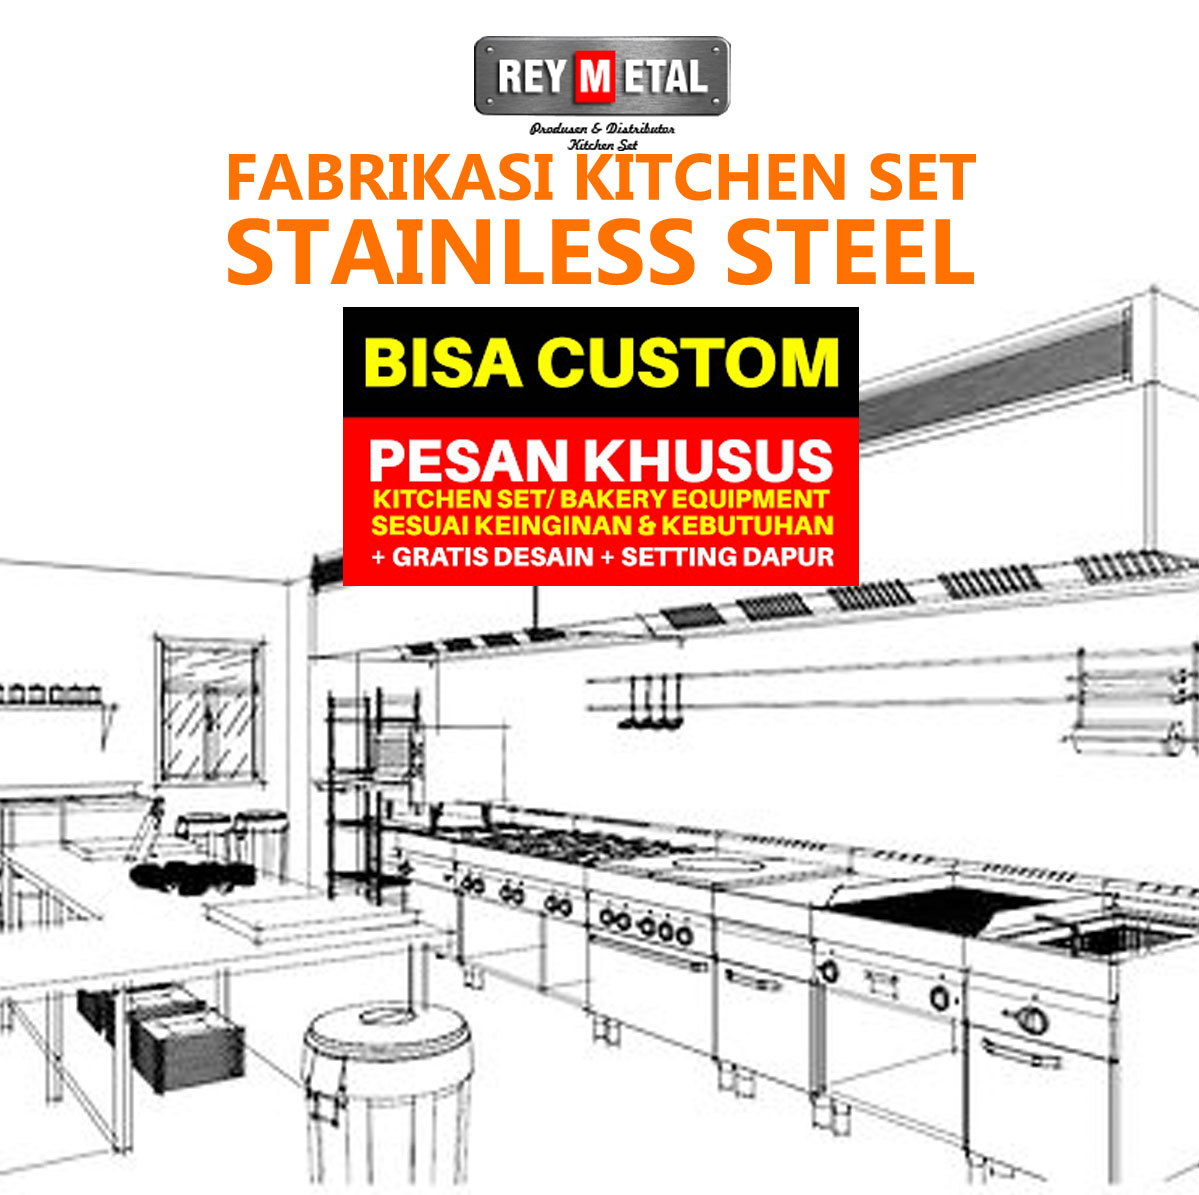 Fabrikasi Kitchen Set Stainless Steel